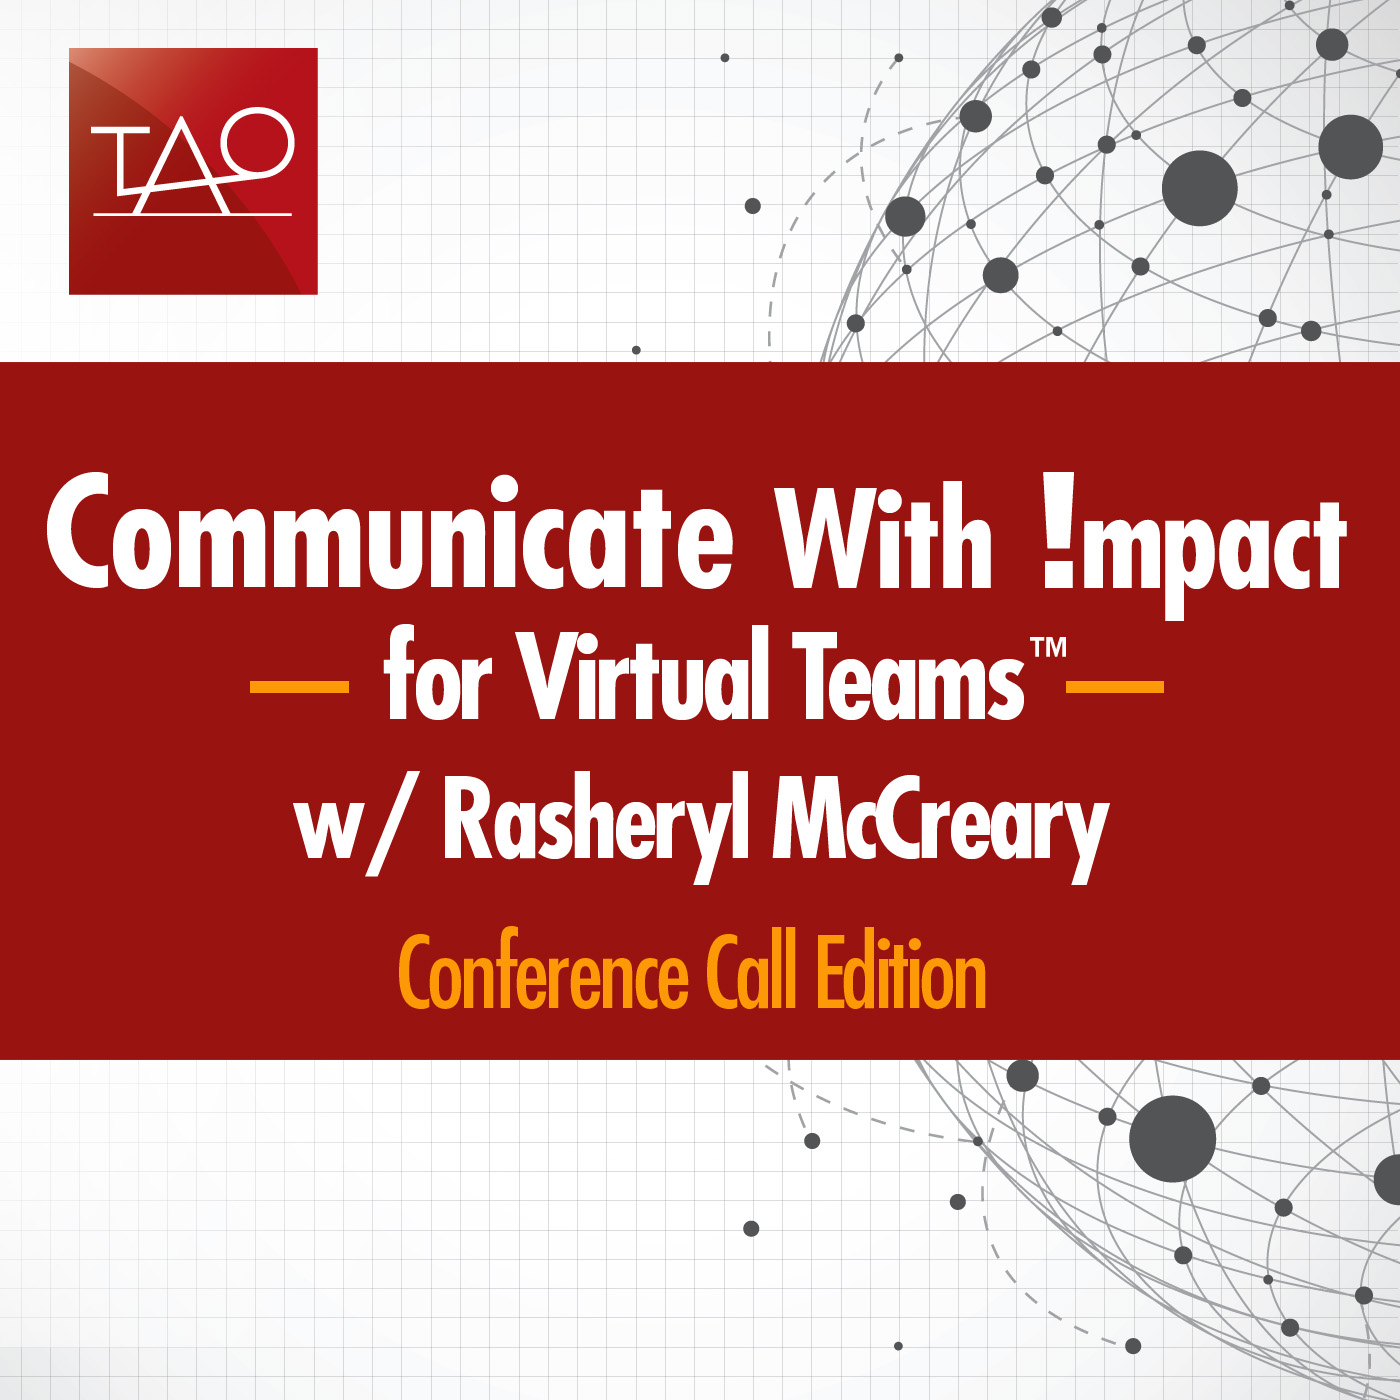 Communicate with Impact for Virtual Teams™- Conference Call Edition